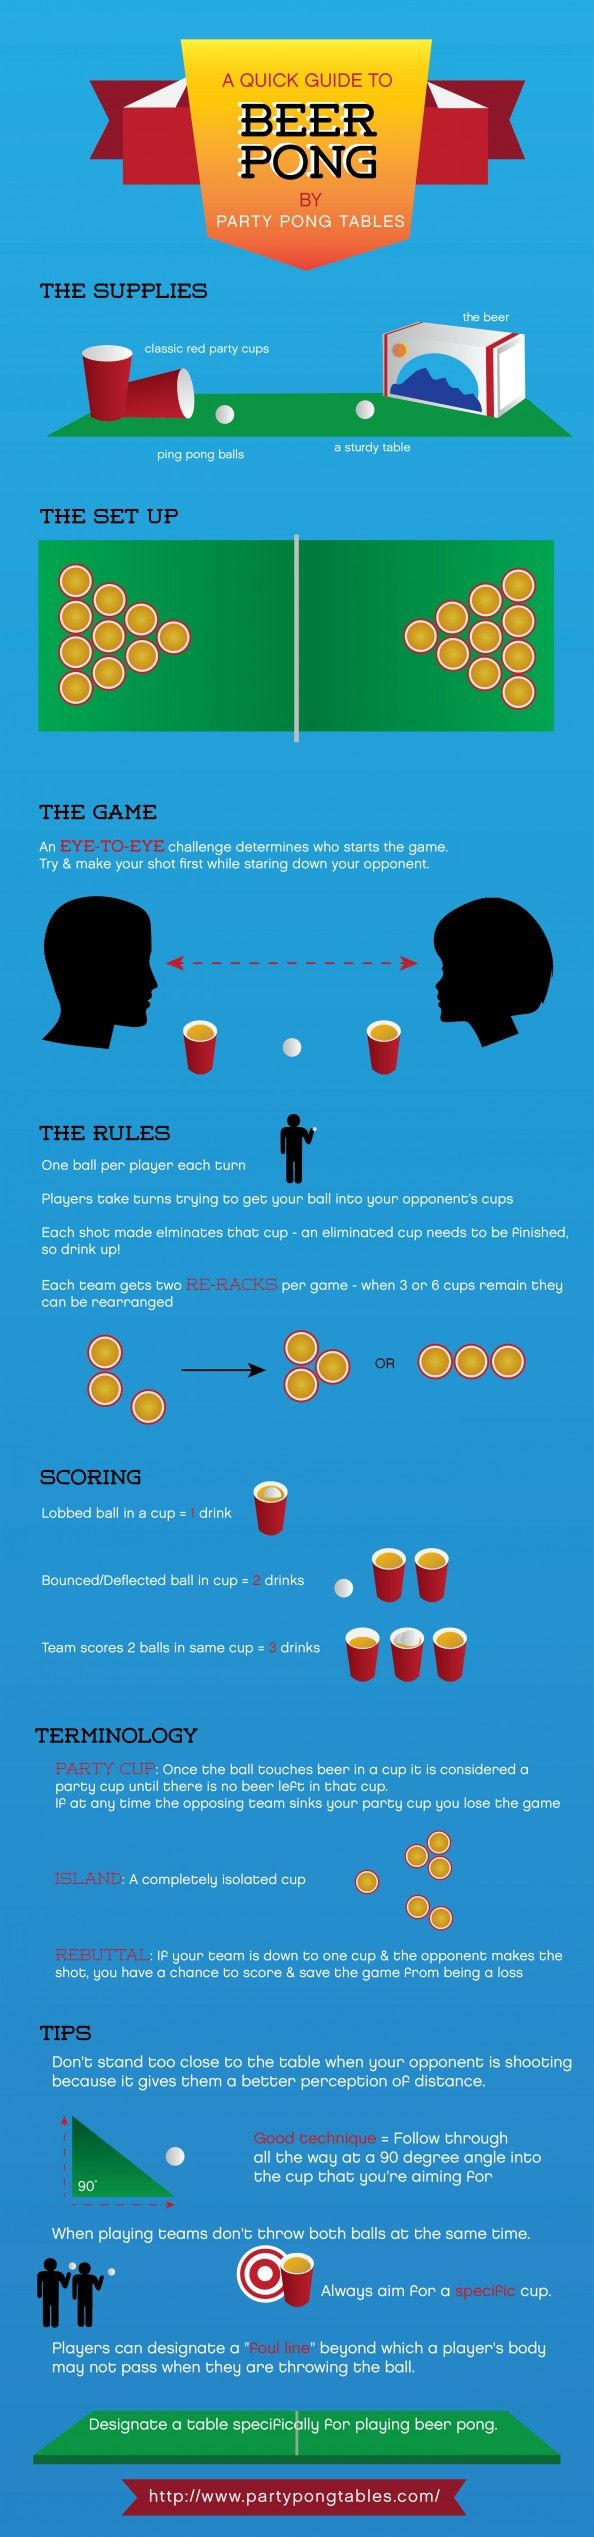 A Quick Guide to Beer Pong | Visual.ly